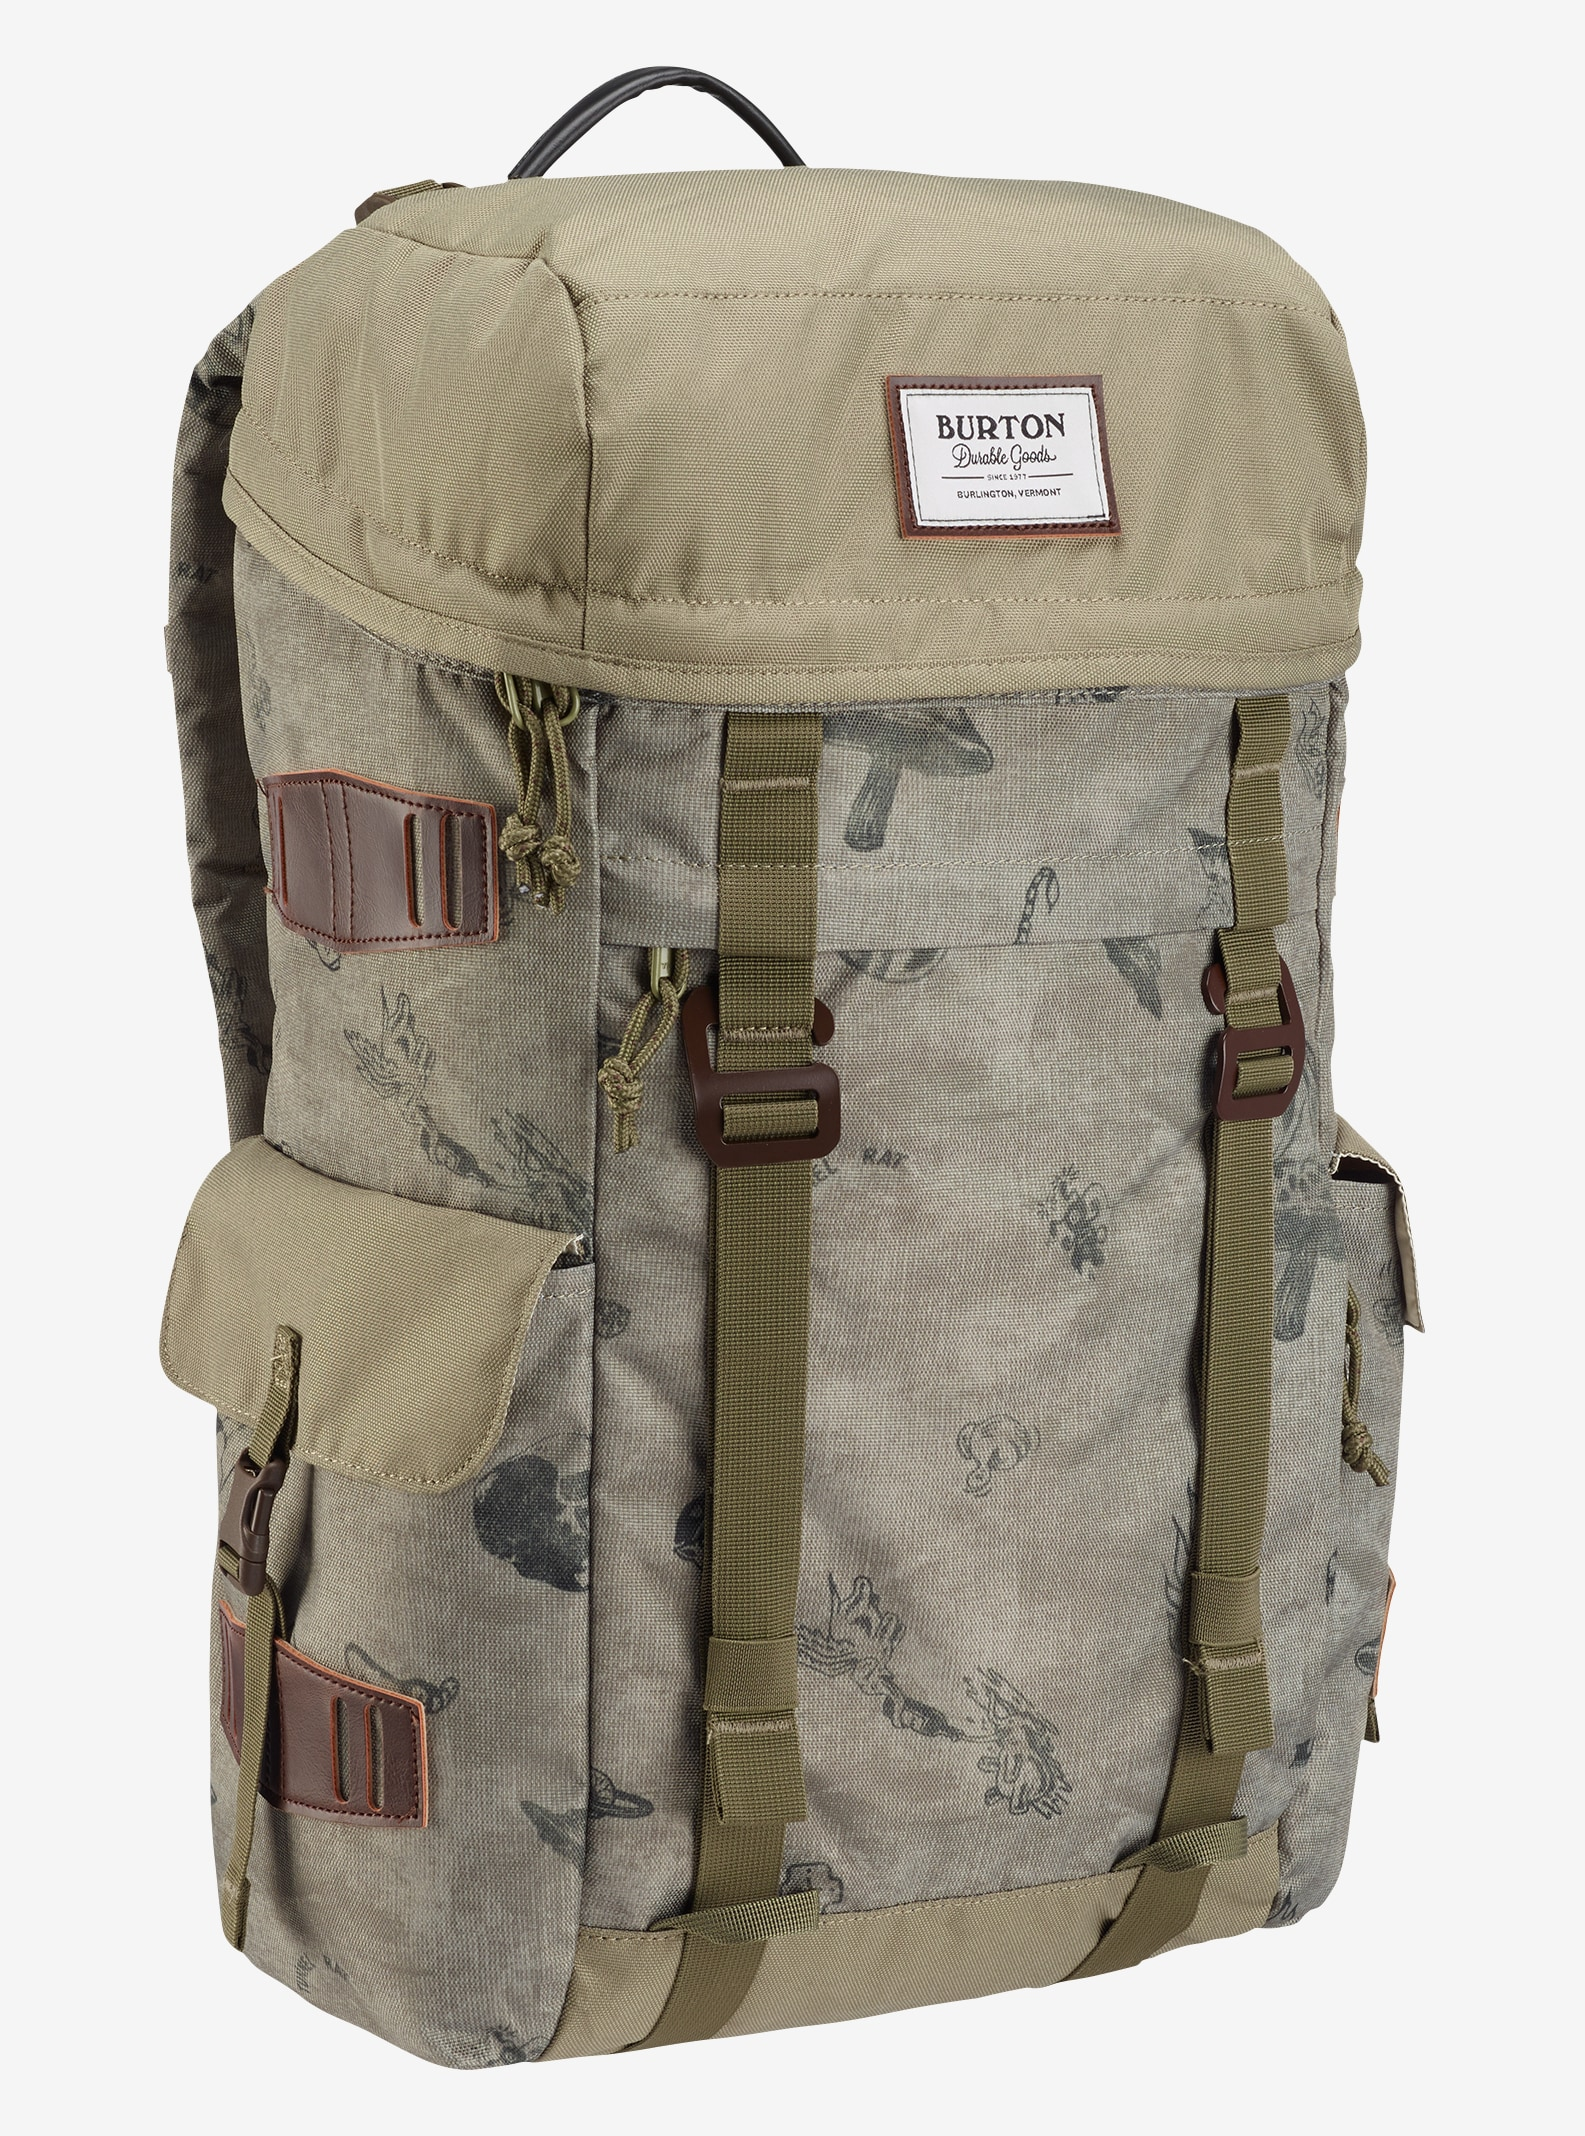 Burton Annex Backpack shown in Artifact Print